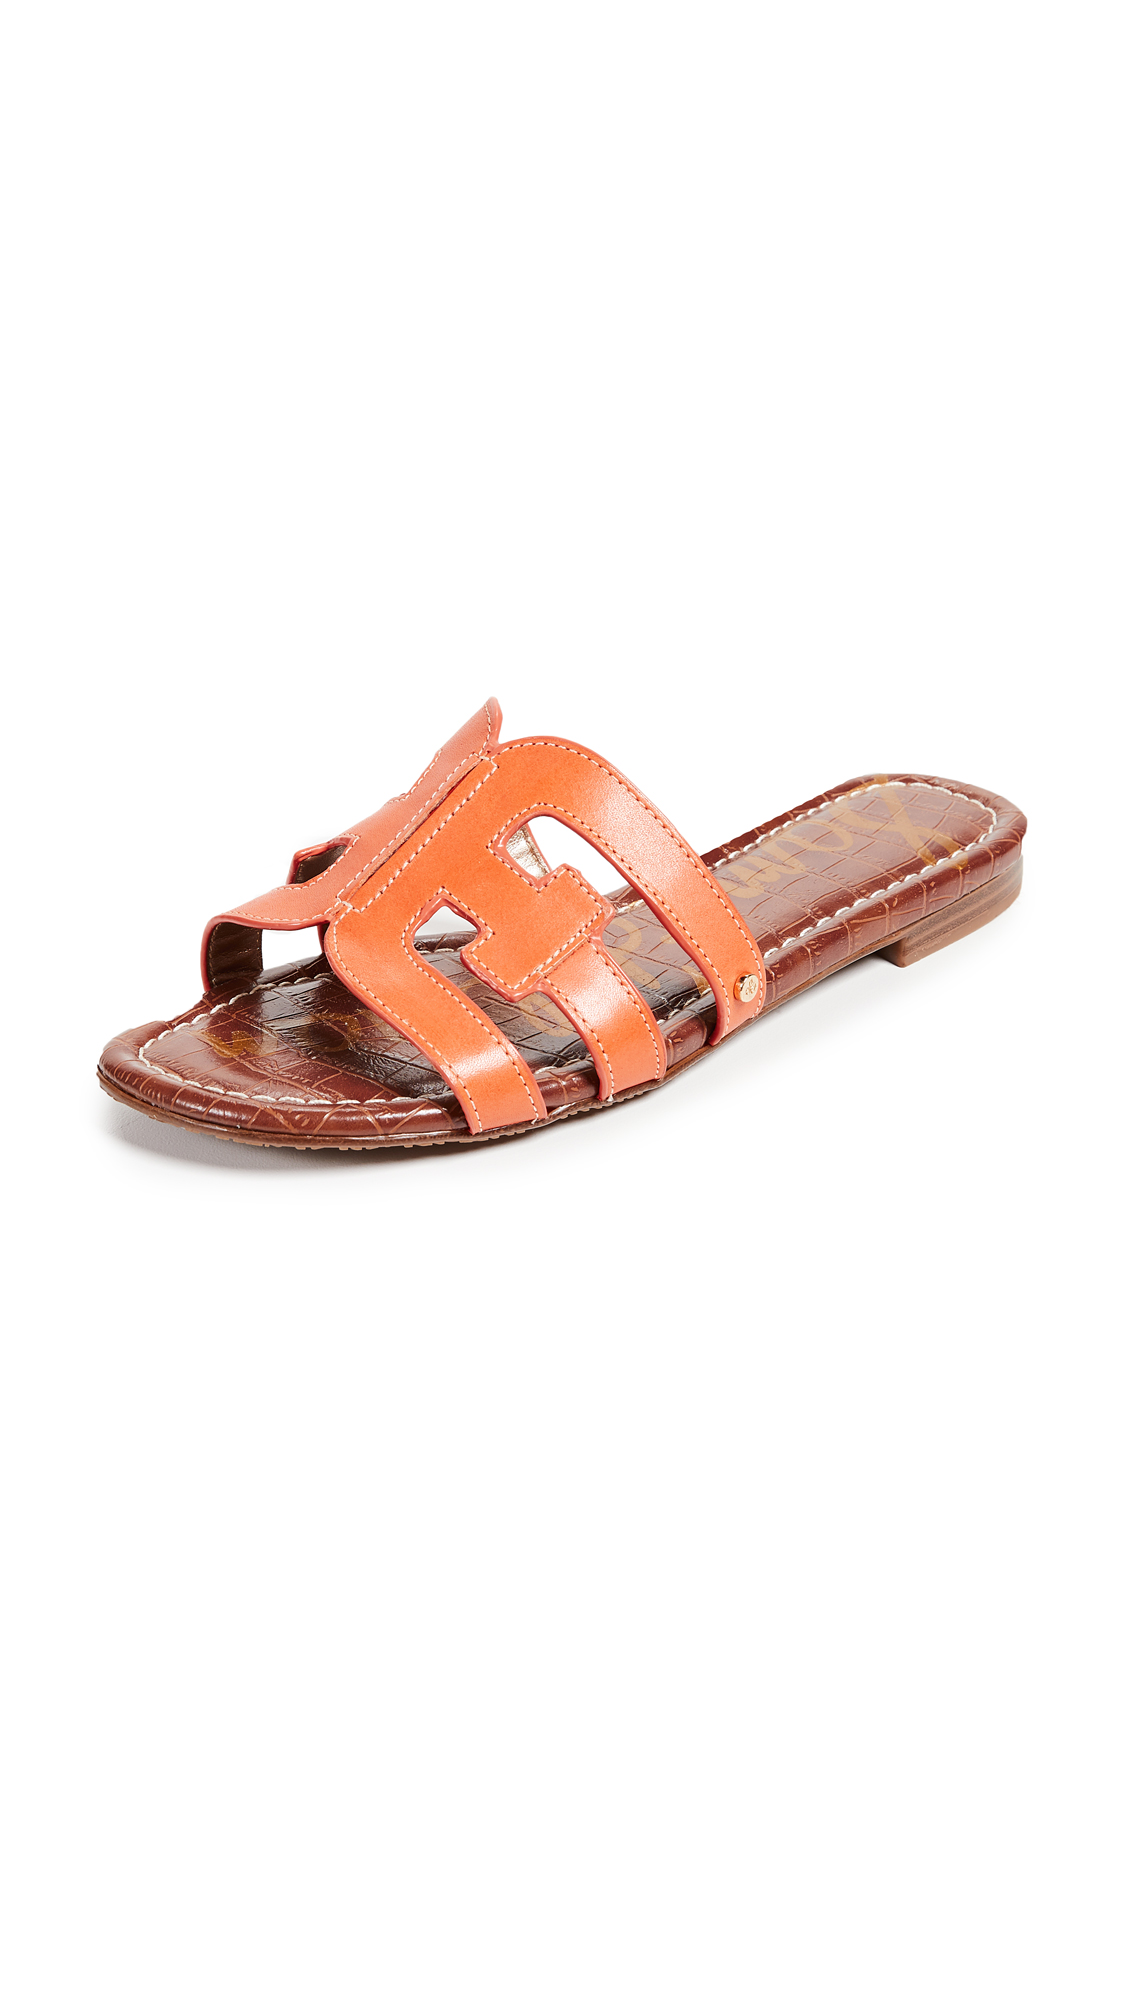 Sam Edelman Bay Slides - Tangelo